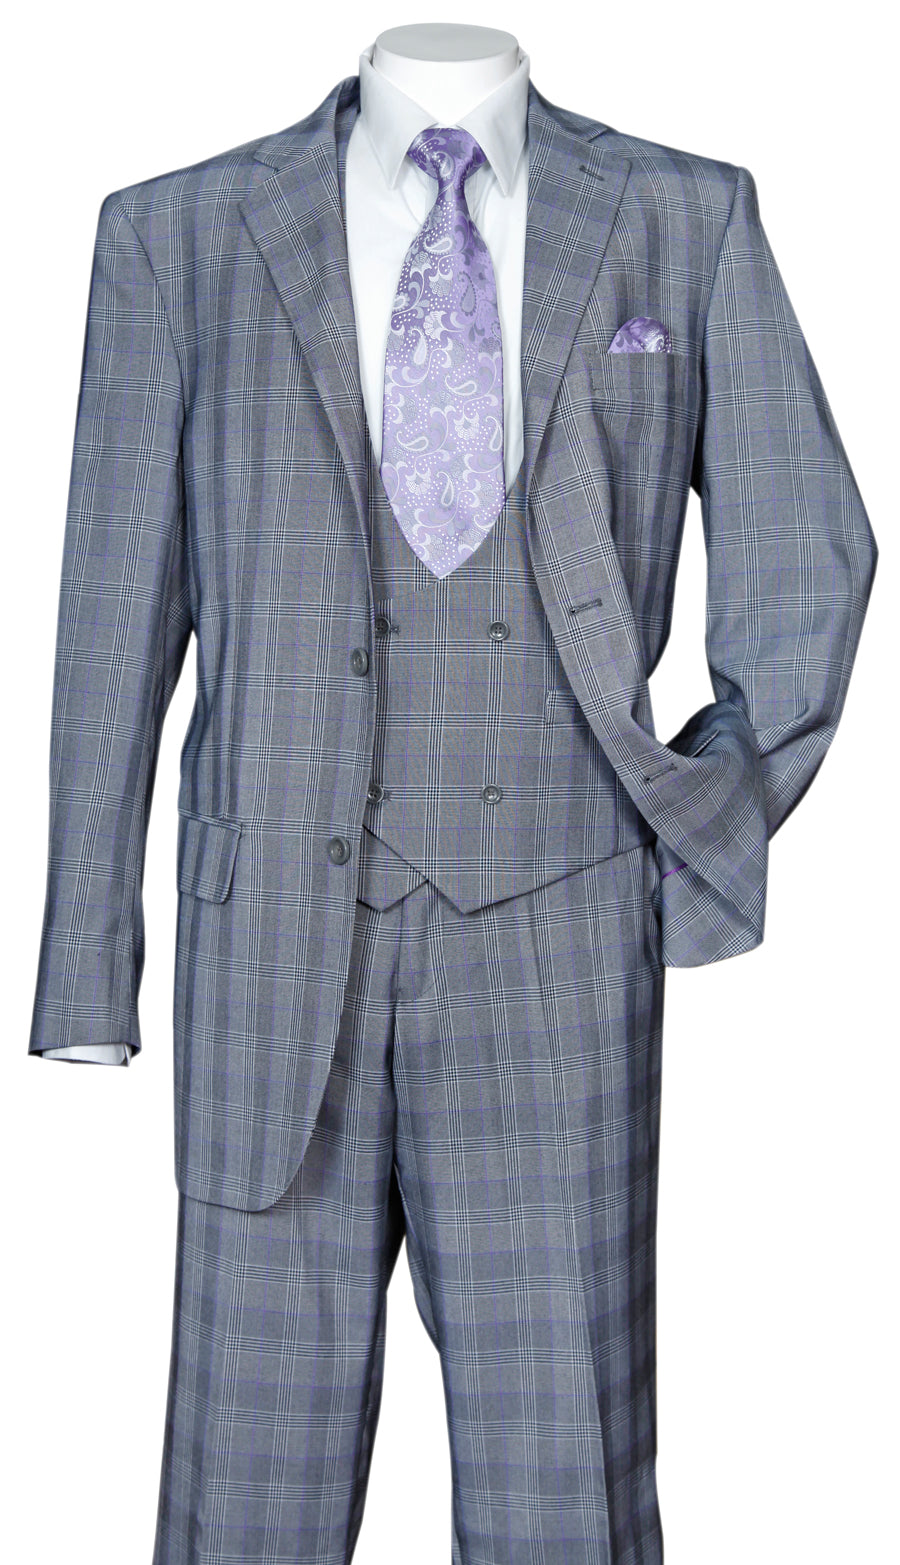 Fortino Landi Suit 5702V6-Grey - Church Suits For Less